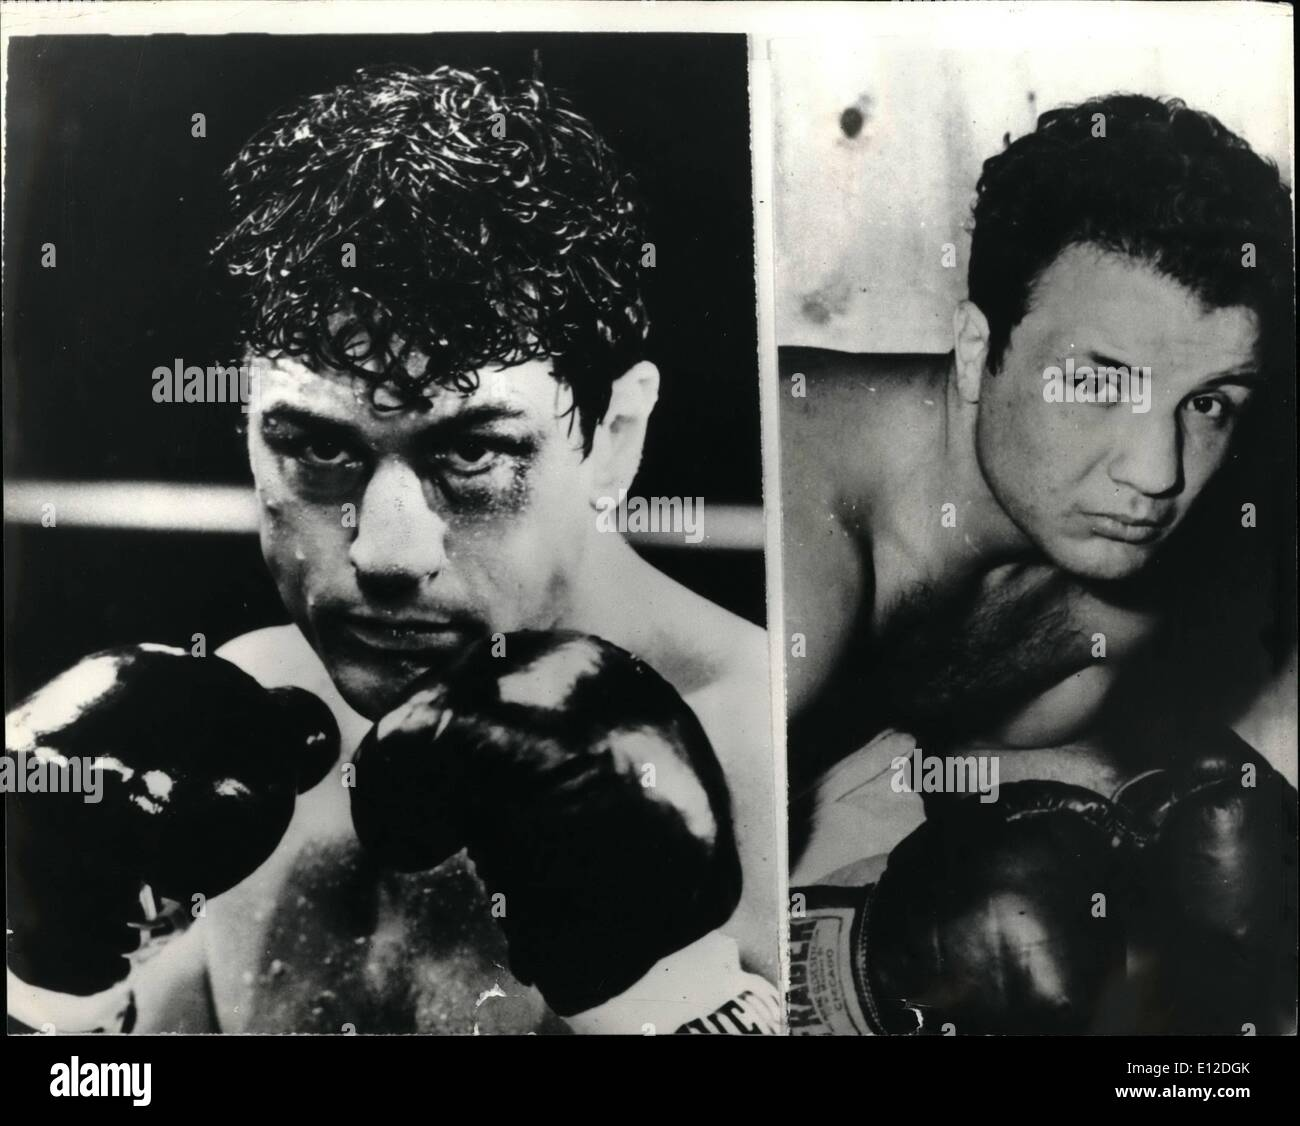 Dec. 15, 2011 - De Niro Is Middleweight Champion Of The World; In a new hard-hitting film called ''Raging Bull'', actor Robert De Niro play s the role of Prize fighter Jake La Motta, who in 1948, was proclaimed middleweight champion of the World in New York's Madison Square Garden. The role is based on the true life experience La Motta who has written an extraordinary autobiography about his rise to fame and fortune.his degeneration culminating in imprisonment, and fight back to a Worthwhile life - Stock Image